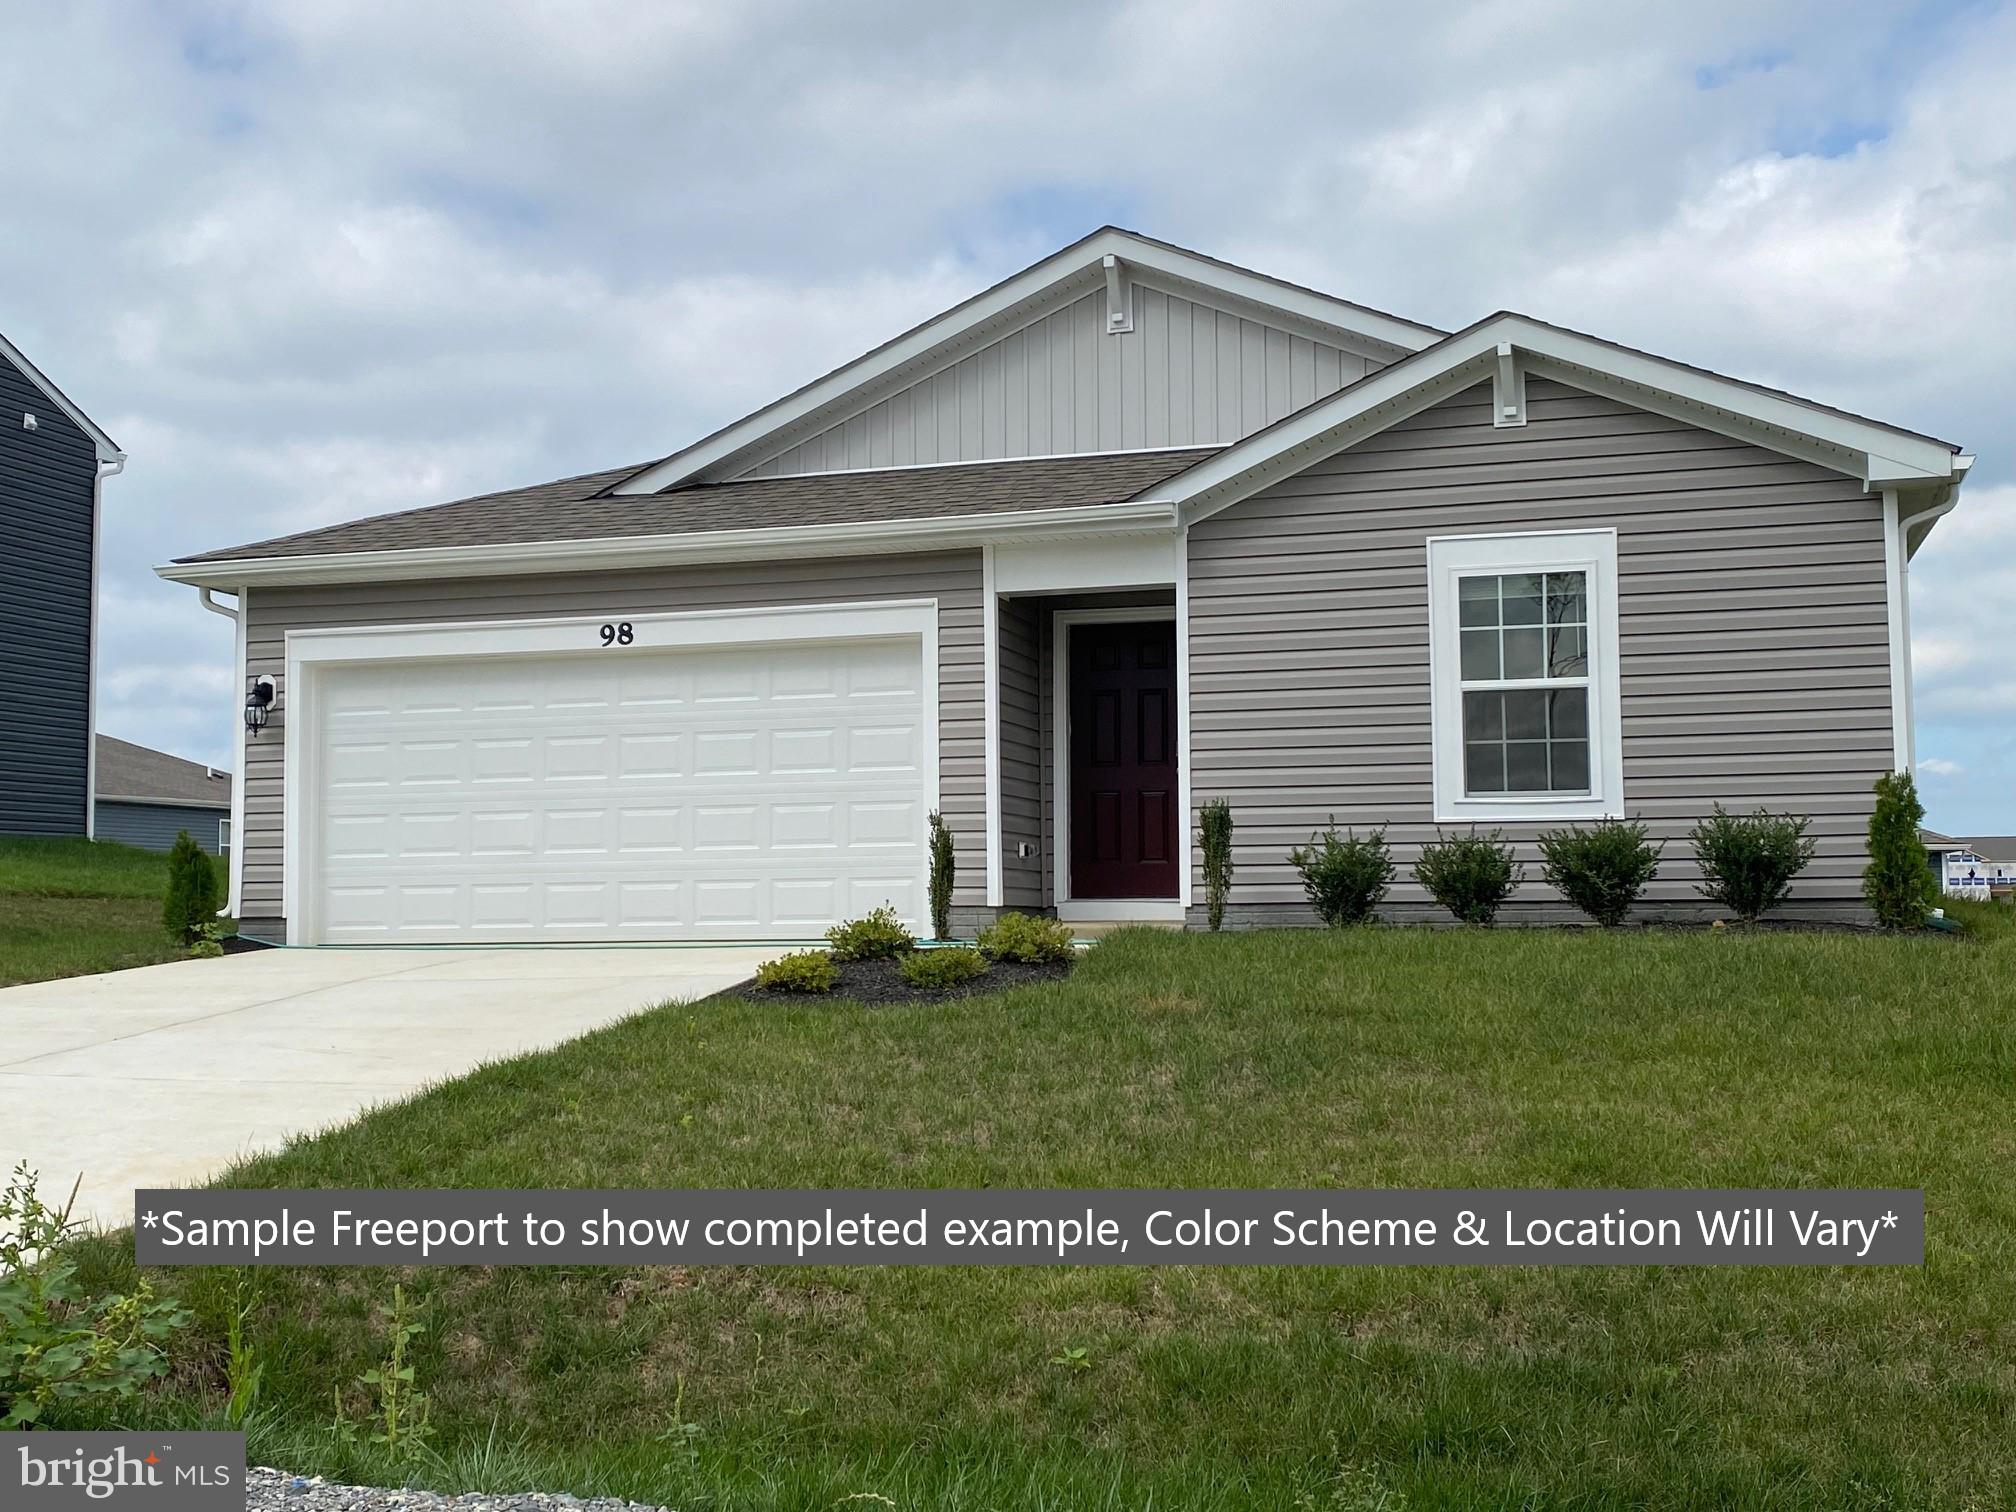 MAGNOLIA SPRINGS- GRAND OPENING- D R Horton's newest single family Express Homes community in Charle